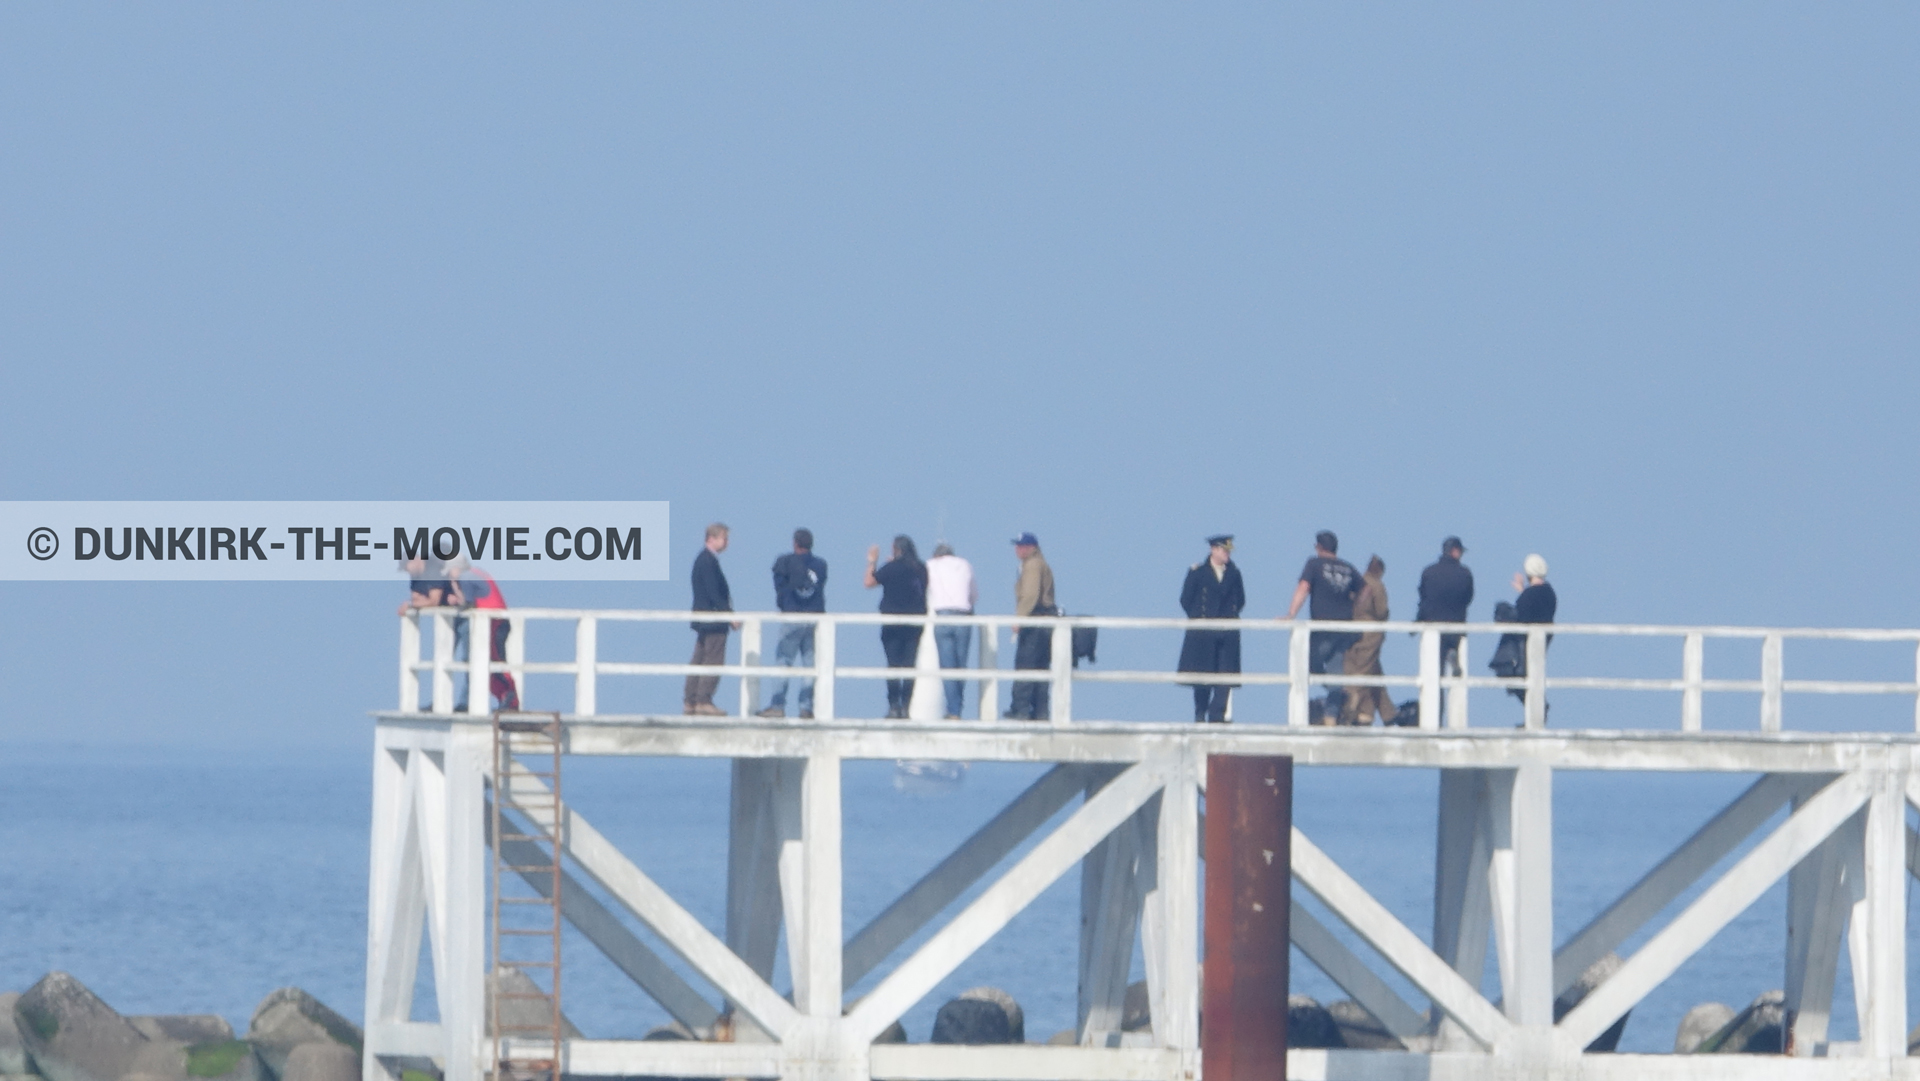 Picture with actor, EST pier, Christopher Nolan, technical team,  from behind the scene of the Dunkirk movie by Nolan